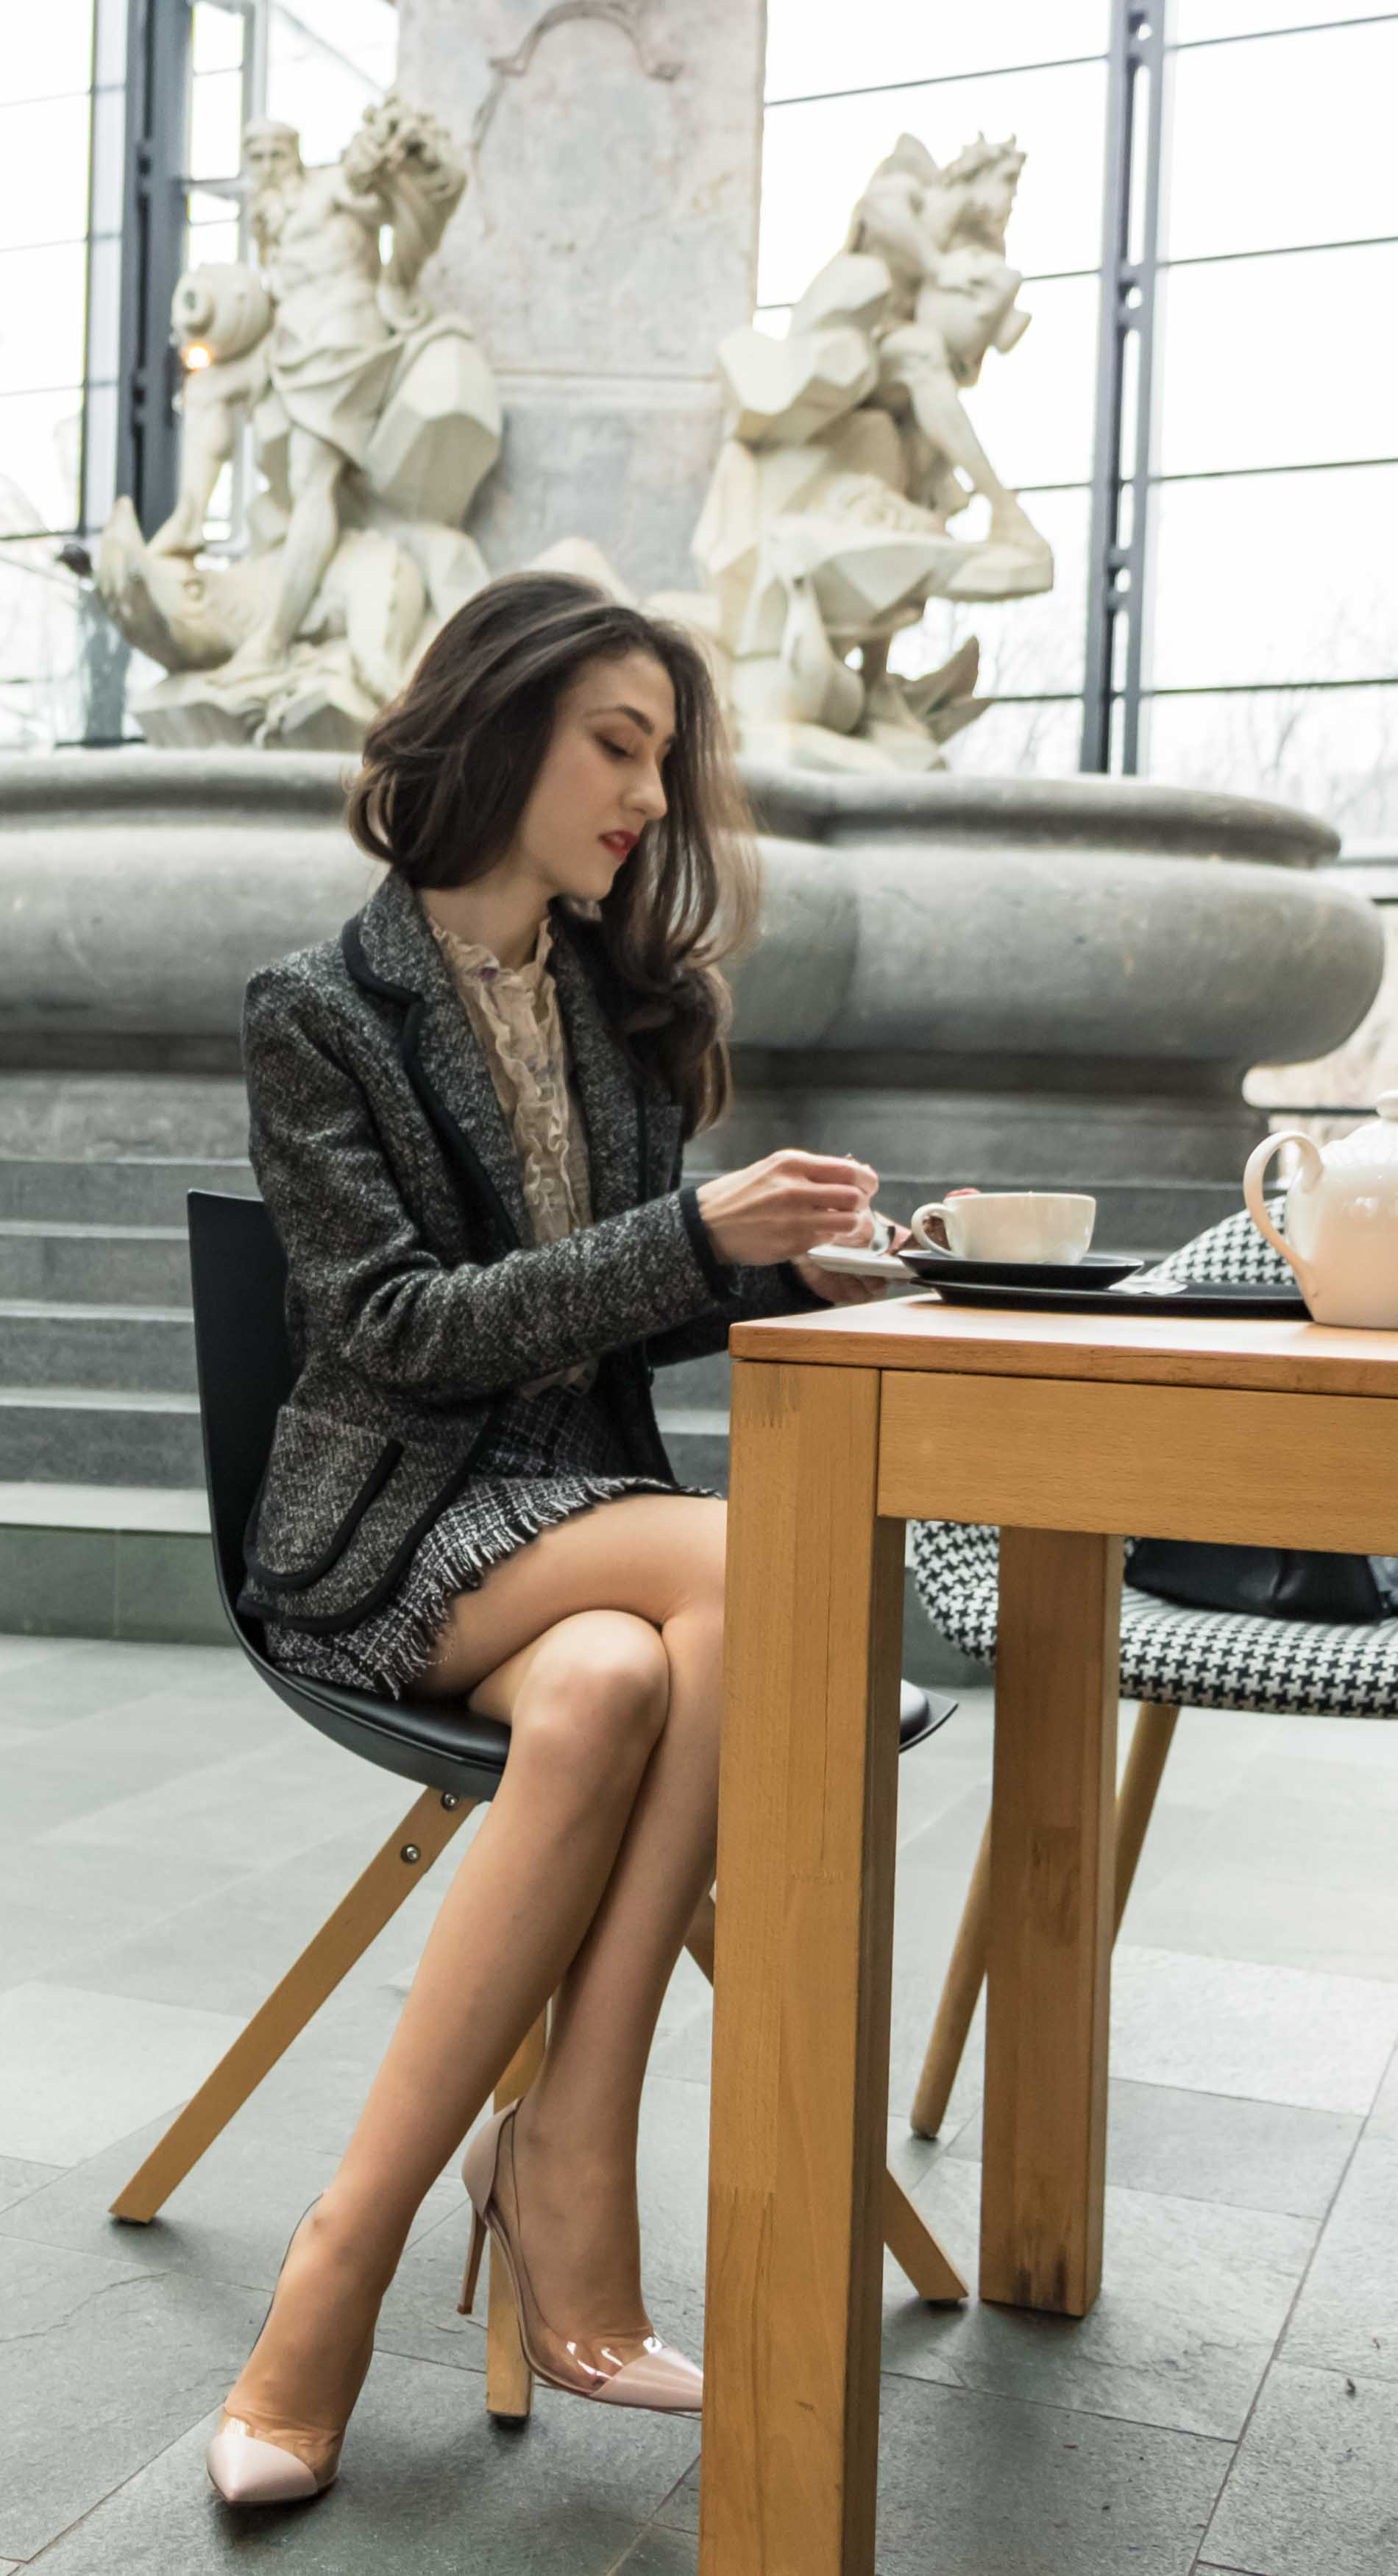 Fashion Blogger Veronika Lipar of Brunette from Wall Street wearing blush Gianvito Rossi Plexi 100 leather and PVC pump shoes, tweed plaid mini skirt from Storets, black and white Marella tweed jacket while having an afternoon tea